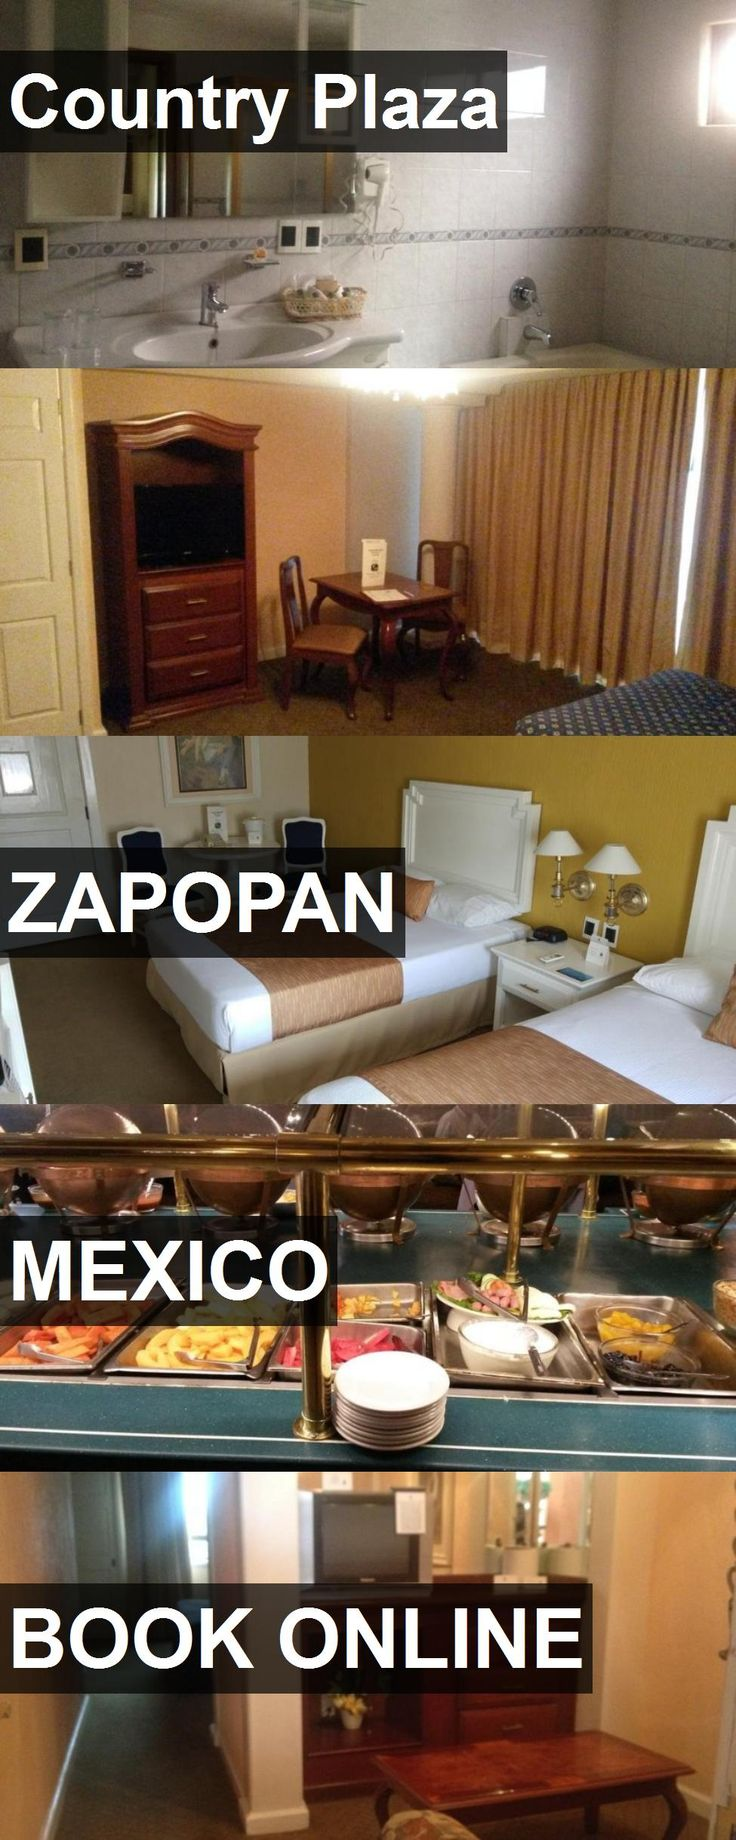 Hotel Country Plaza in Zapopan, Mexico. For more information, photos, reviews and best prices please follow the link. #Mexico #Zapopan #travel #vacation #hotel